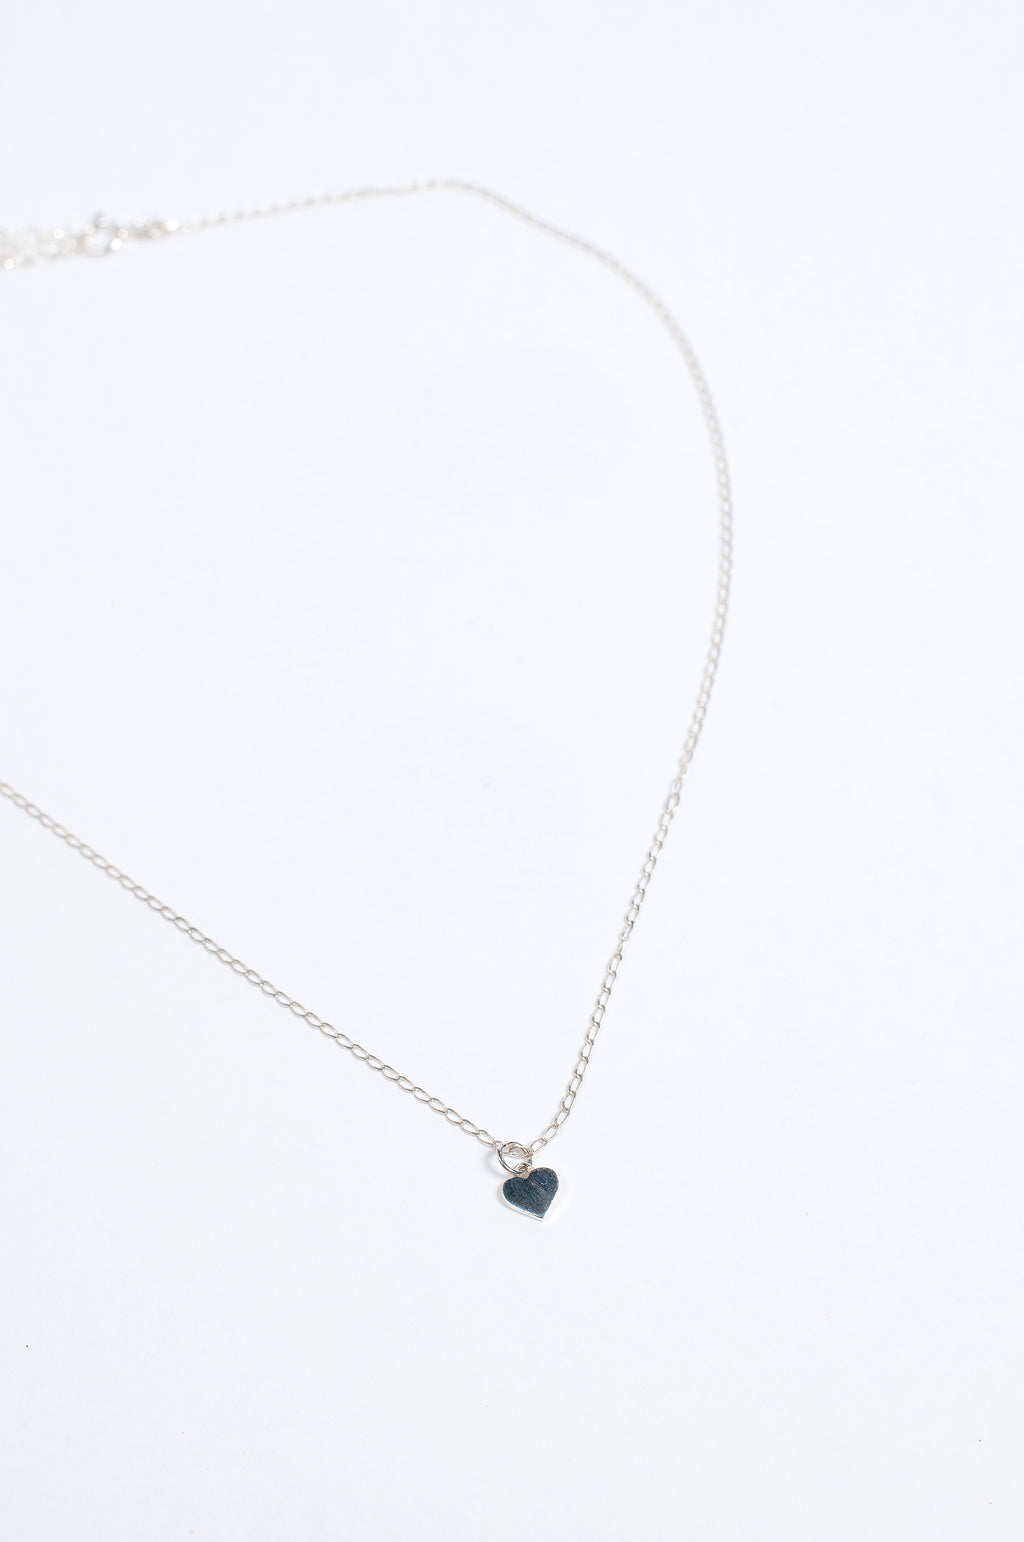 Cito Necklace in Sterling Silver by Martha Cristina